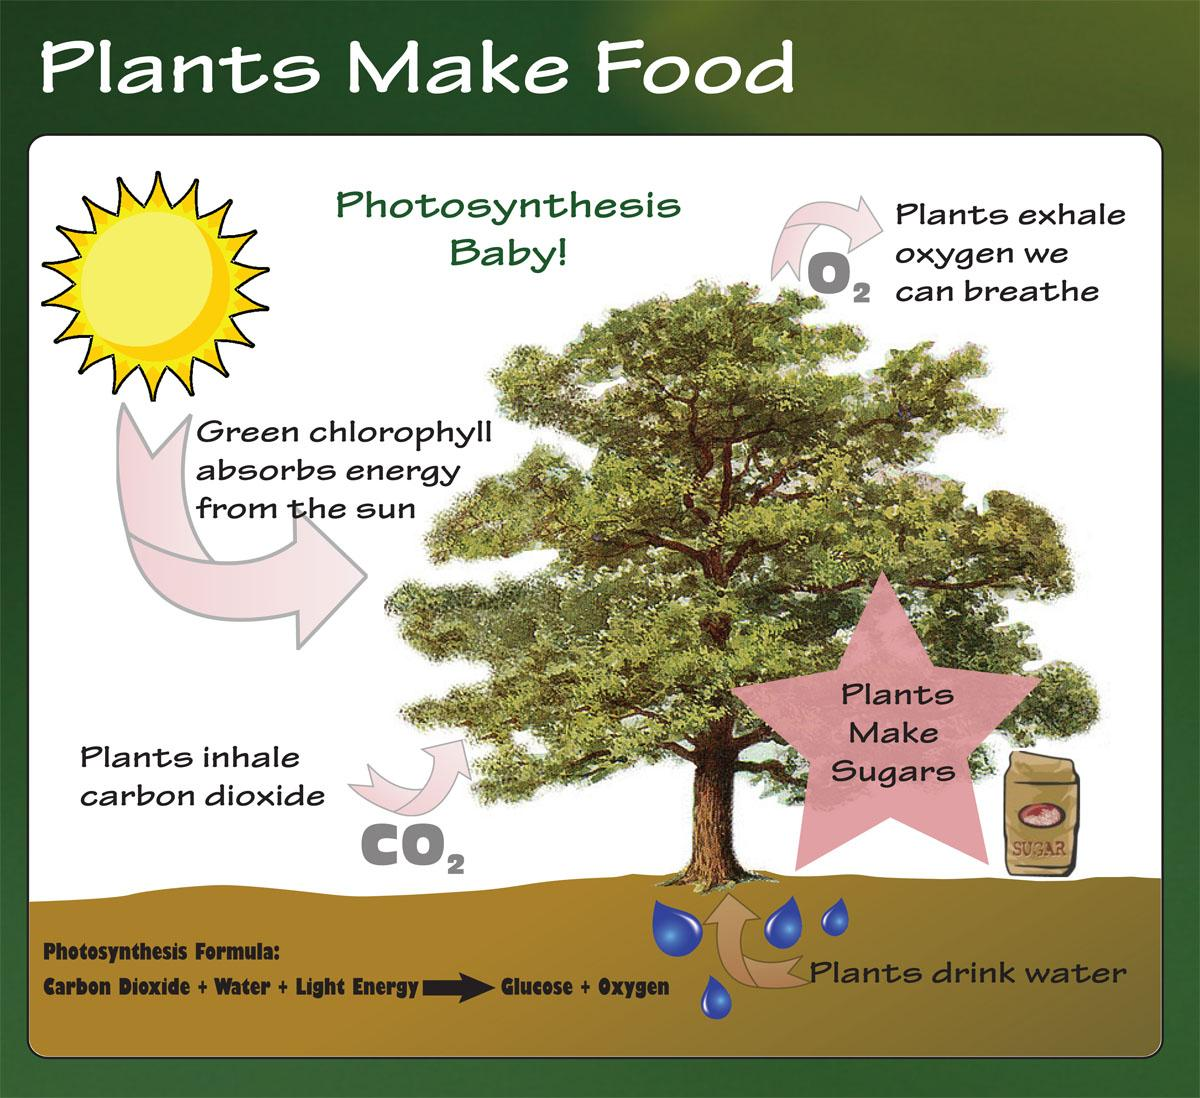 Photosynthesis baby! Plants exhale oxygen we can breath. Green chlorophyll absorbs energy from the sun. Plants inhale carbon dioxide. Plants make sugar.  Plants Drink Water. Photosynthesis Formula: Carbon Dioxide + Water + Light Energy = Glucose + Oxygen.